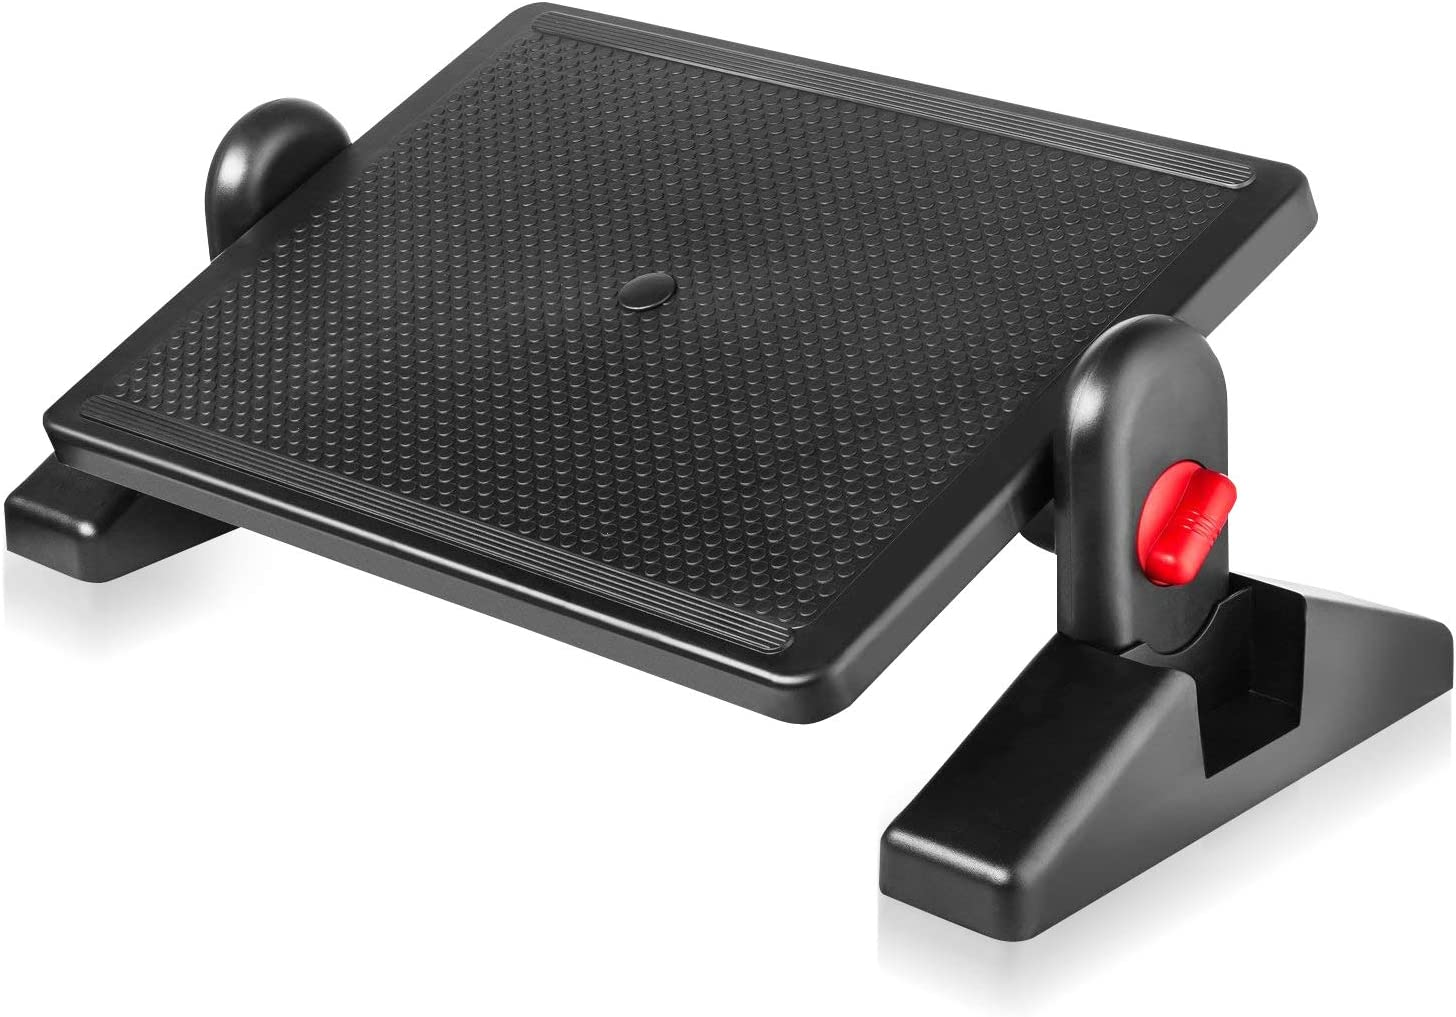 """Under Desk Foot Rest, Black Footstool & Office Ergonomic Footrest, Adjustable Angle & 2 Different Height Positions 16.3"""" X 11.8"""" - Great for Home & Work"""